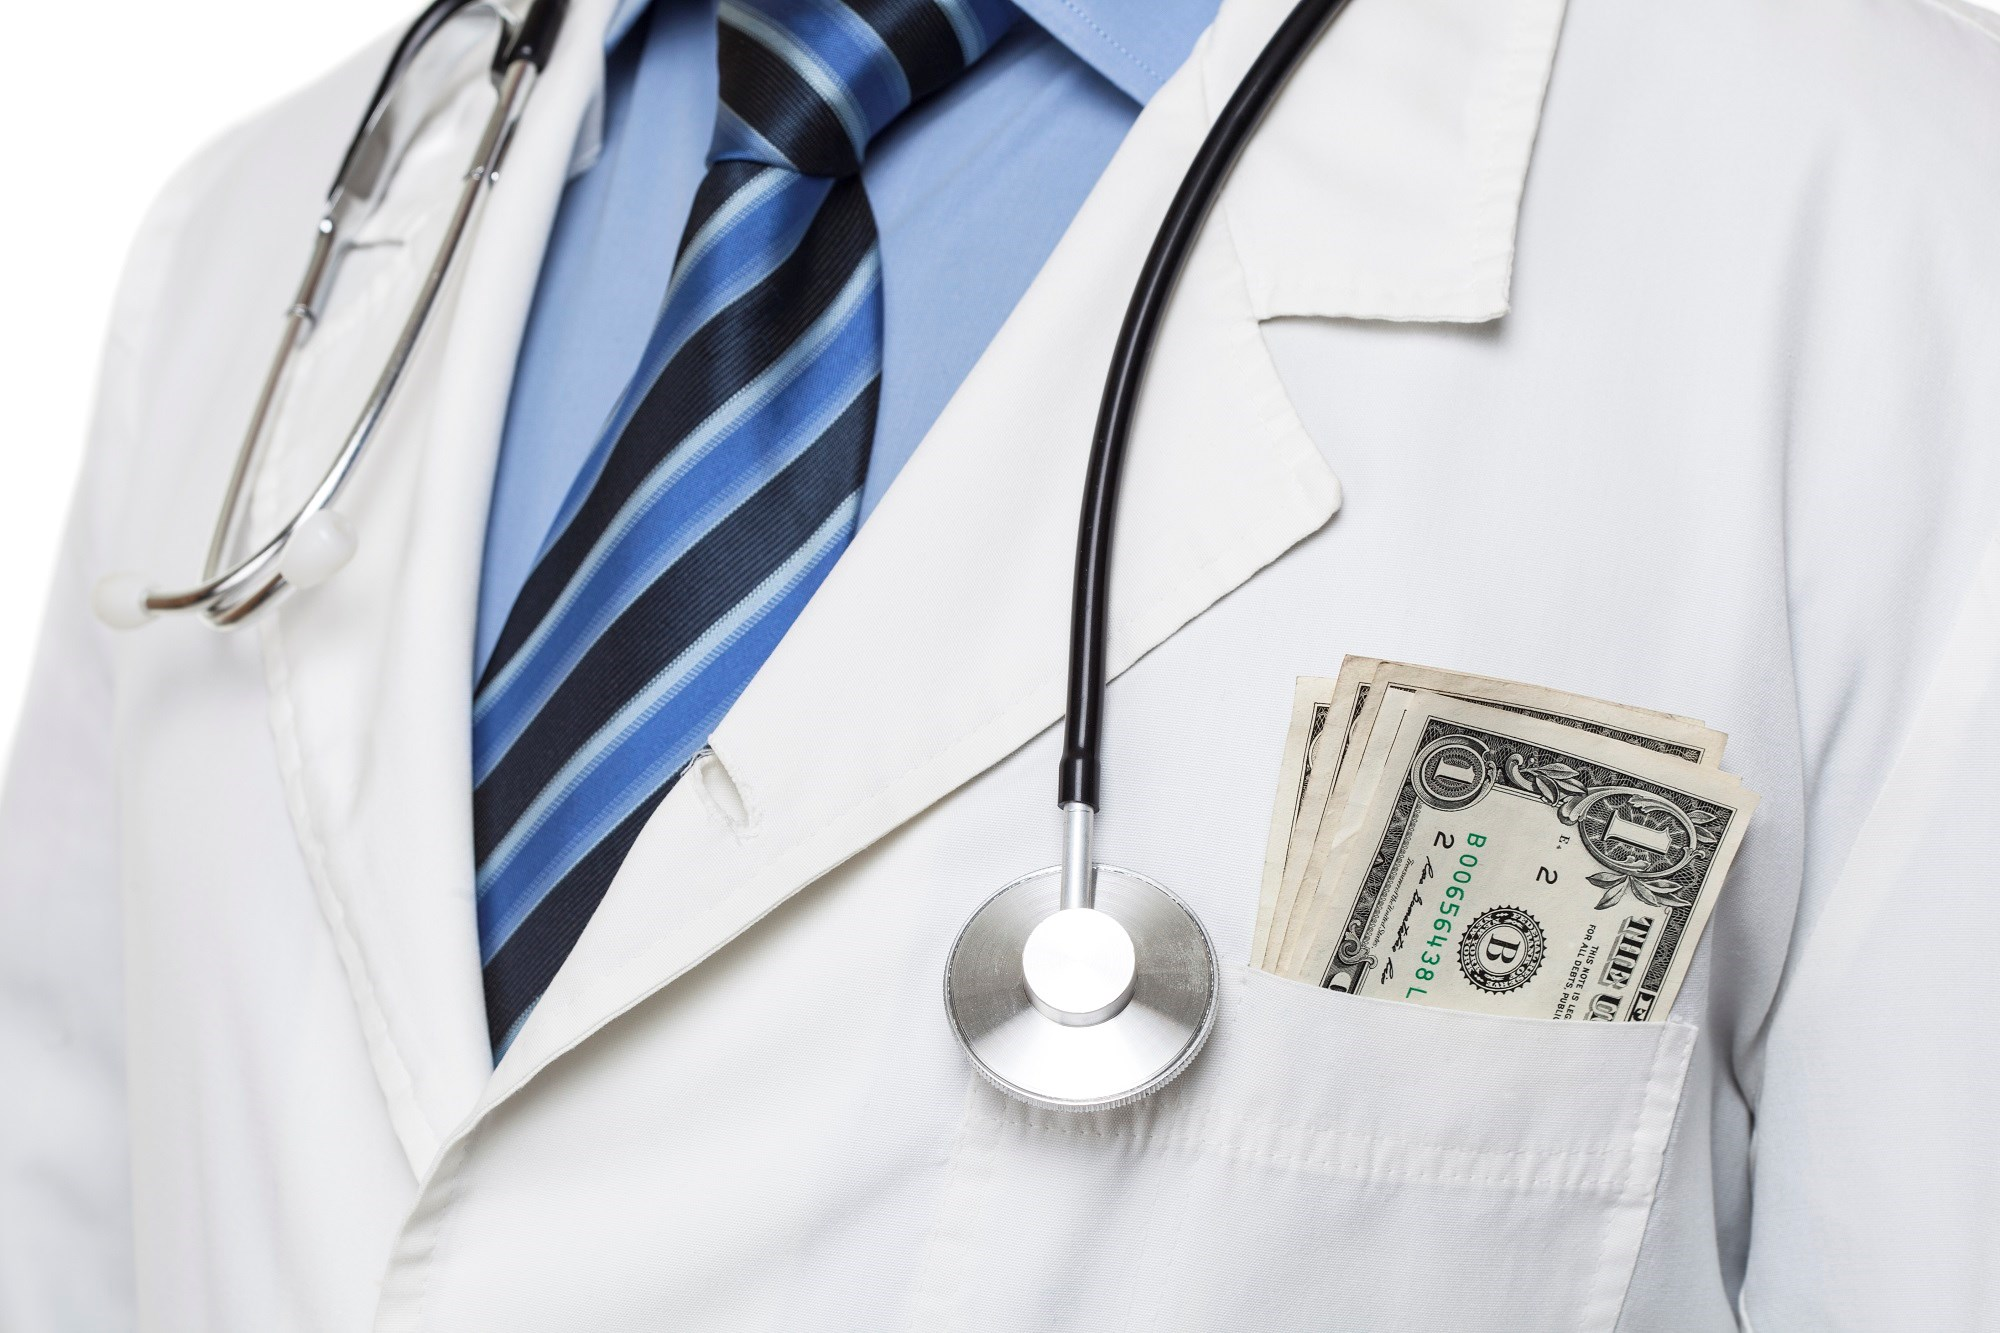 Embezzlement Not Uncommon in Medical Practices